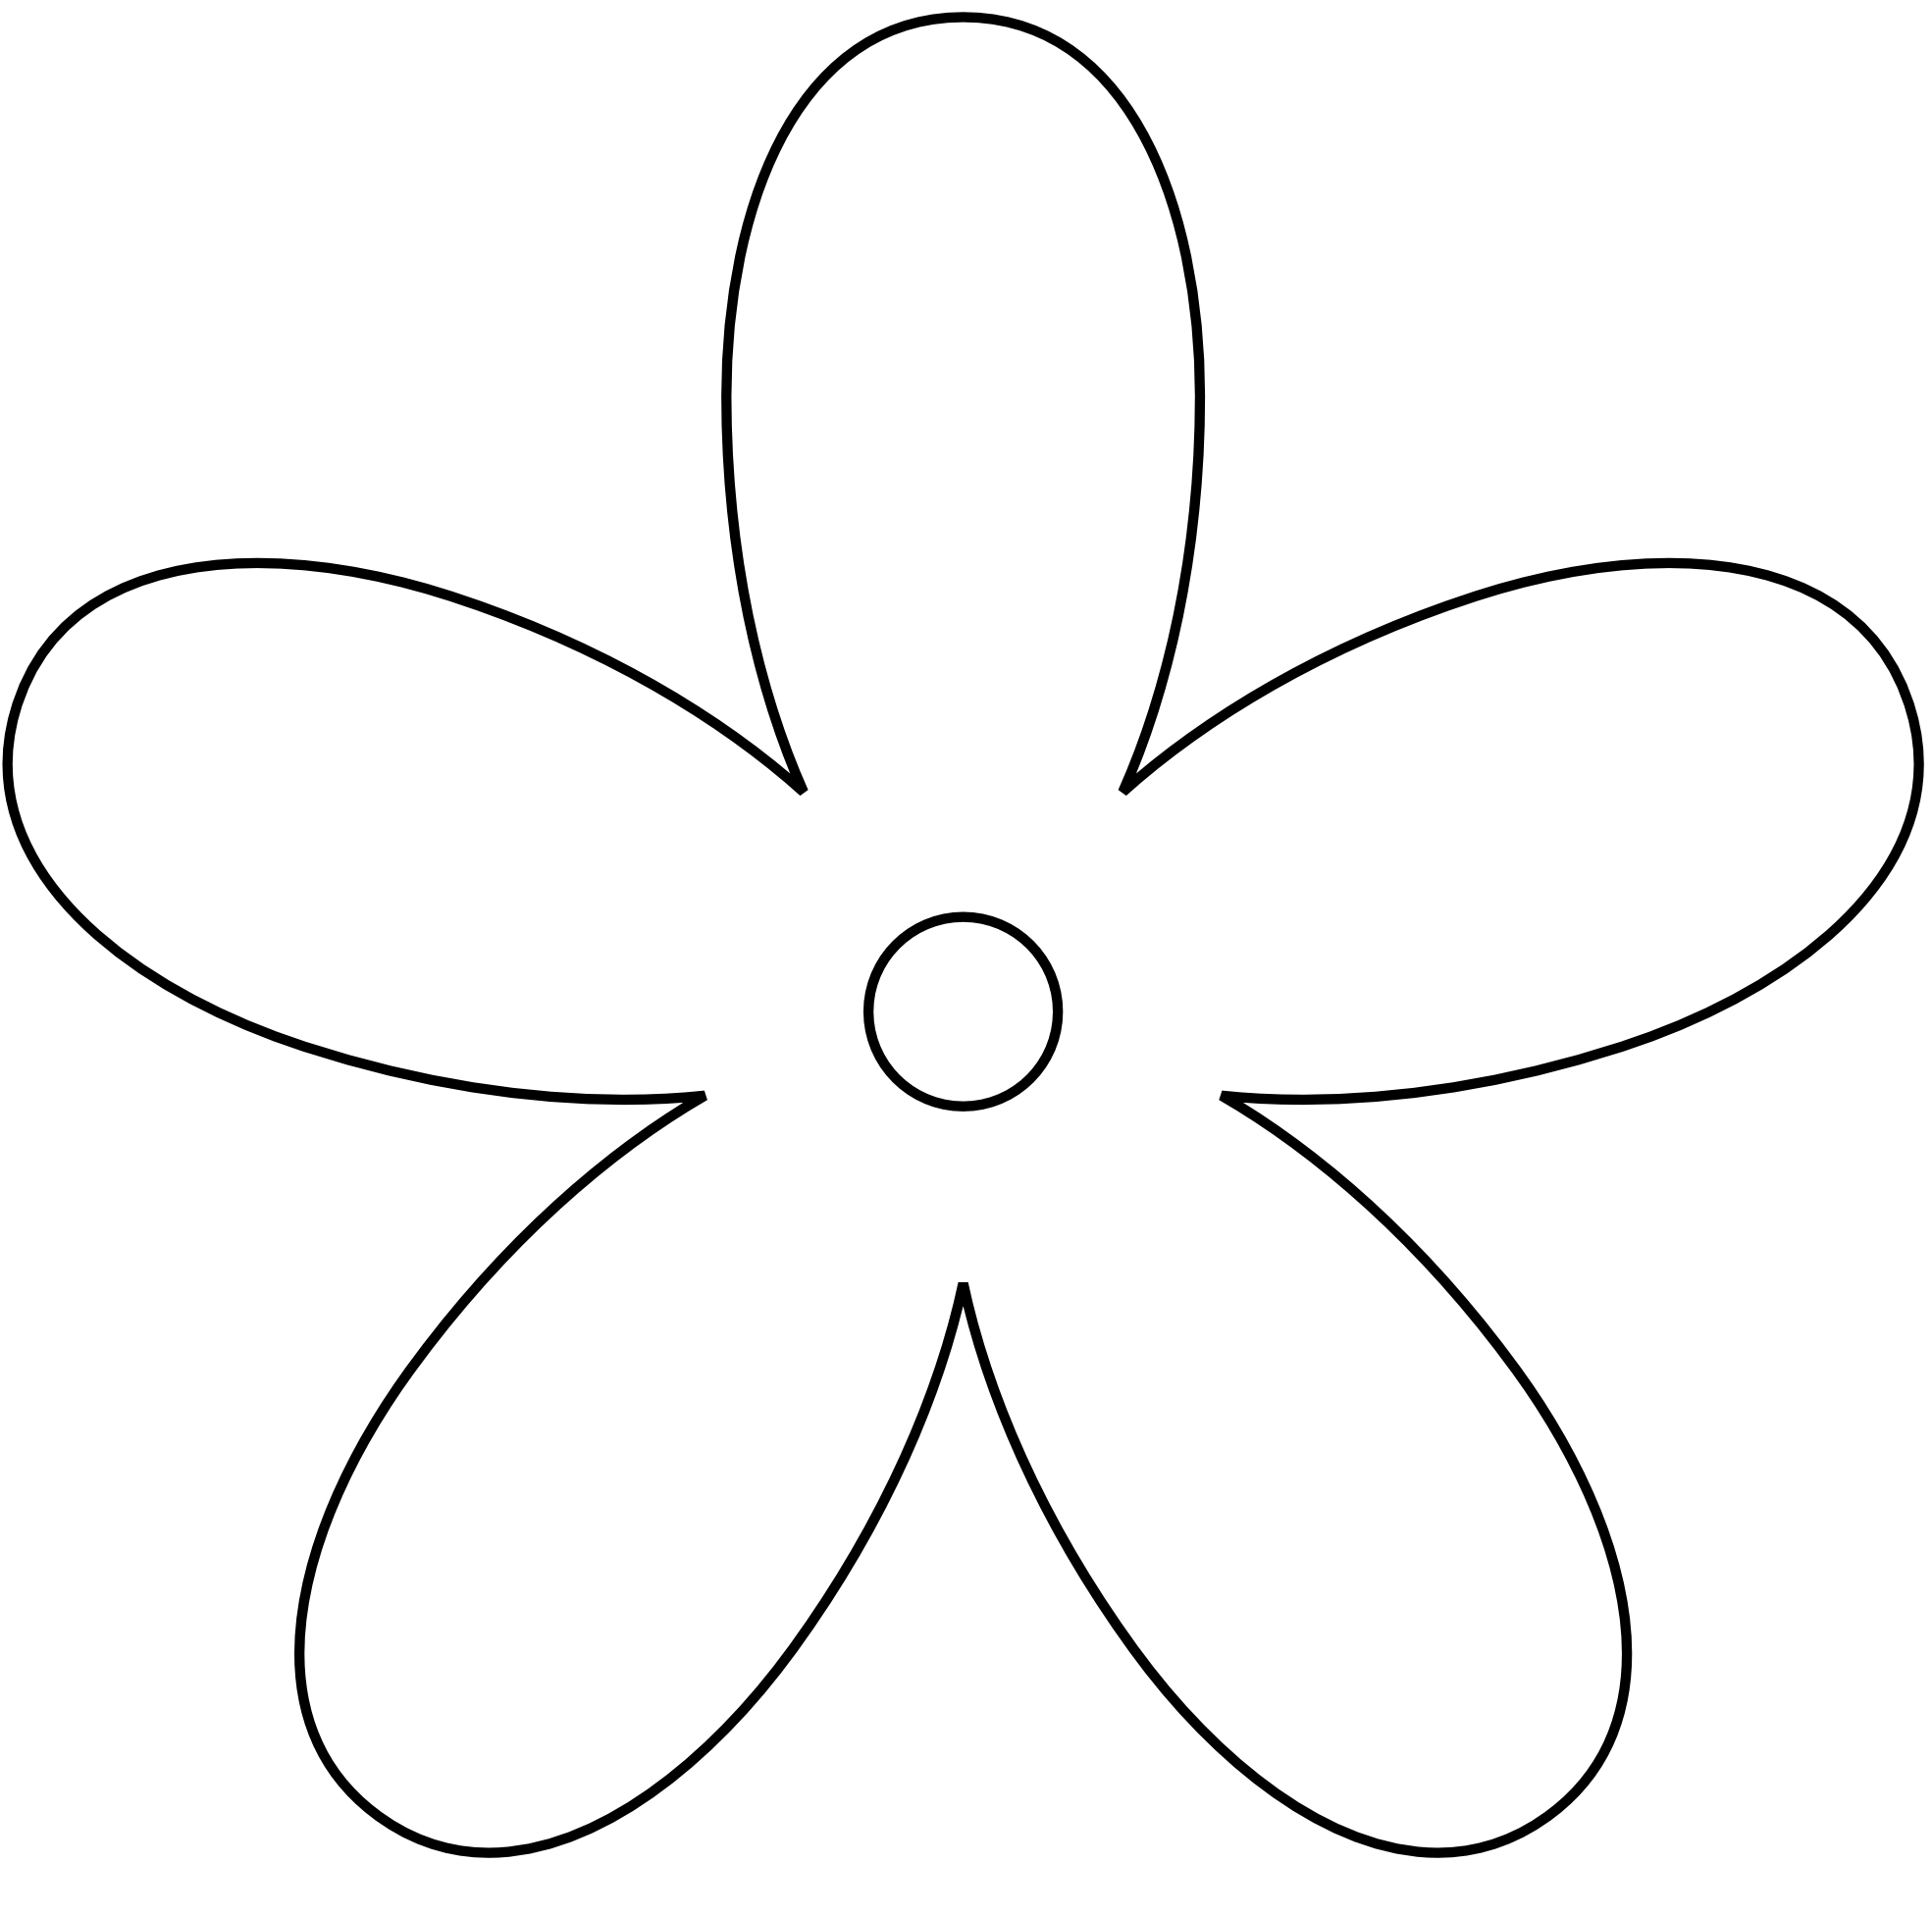 Simple Flower Clipart Black And White.